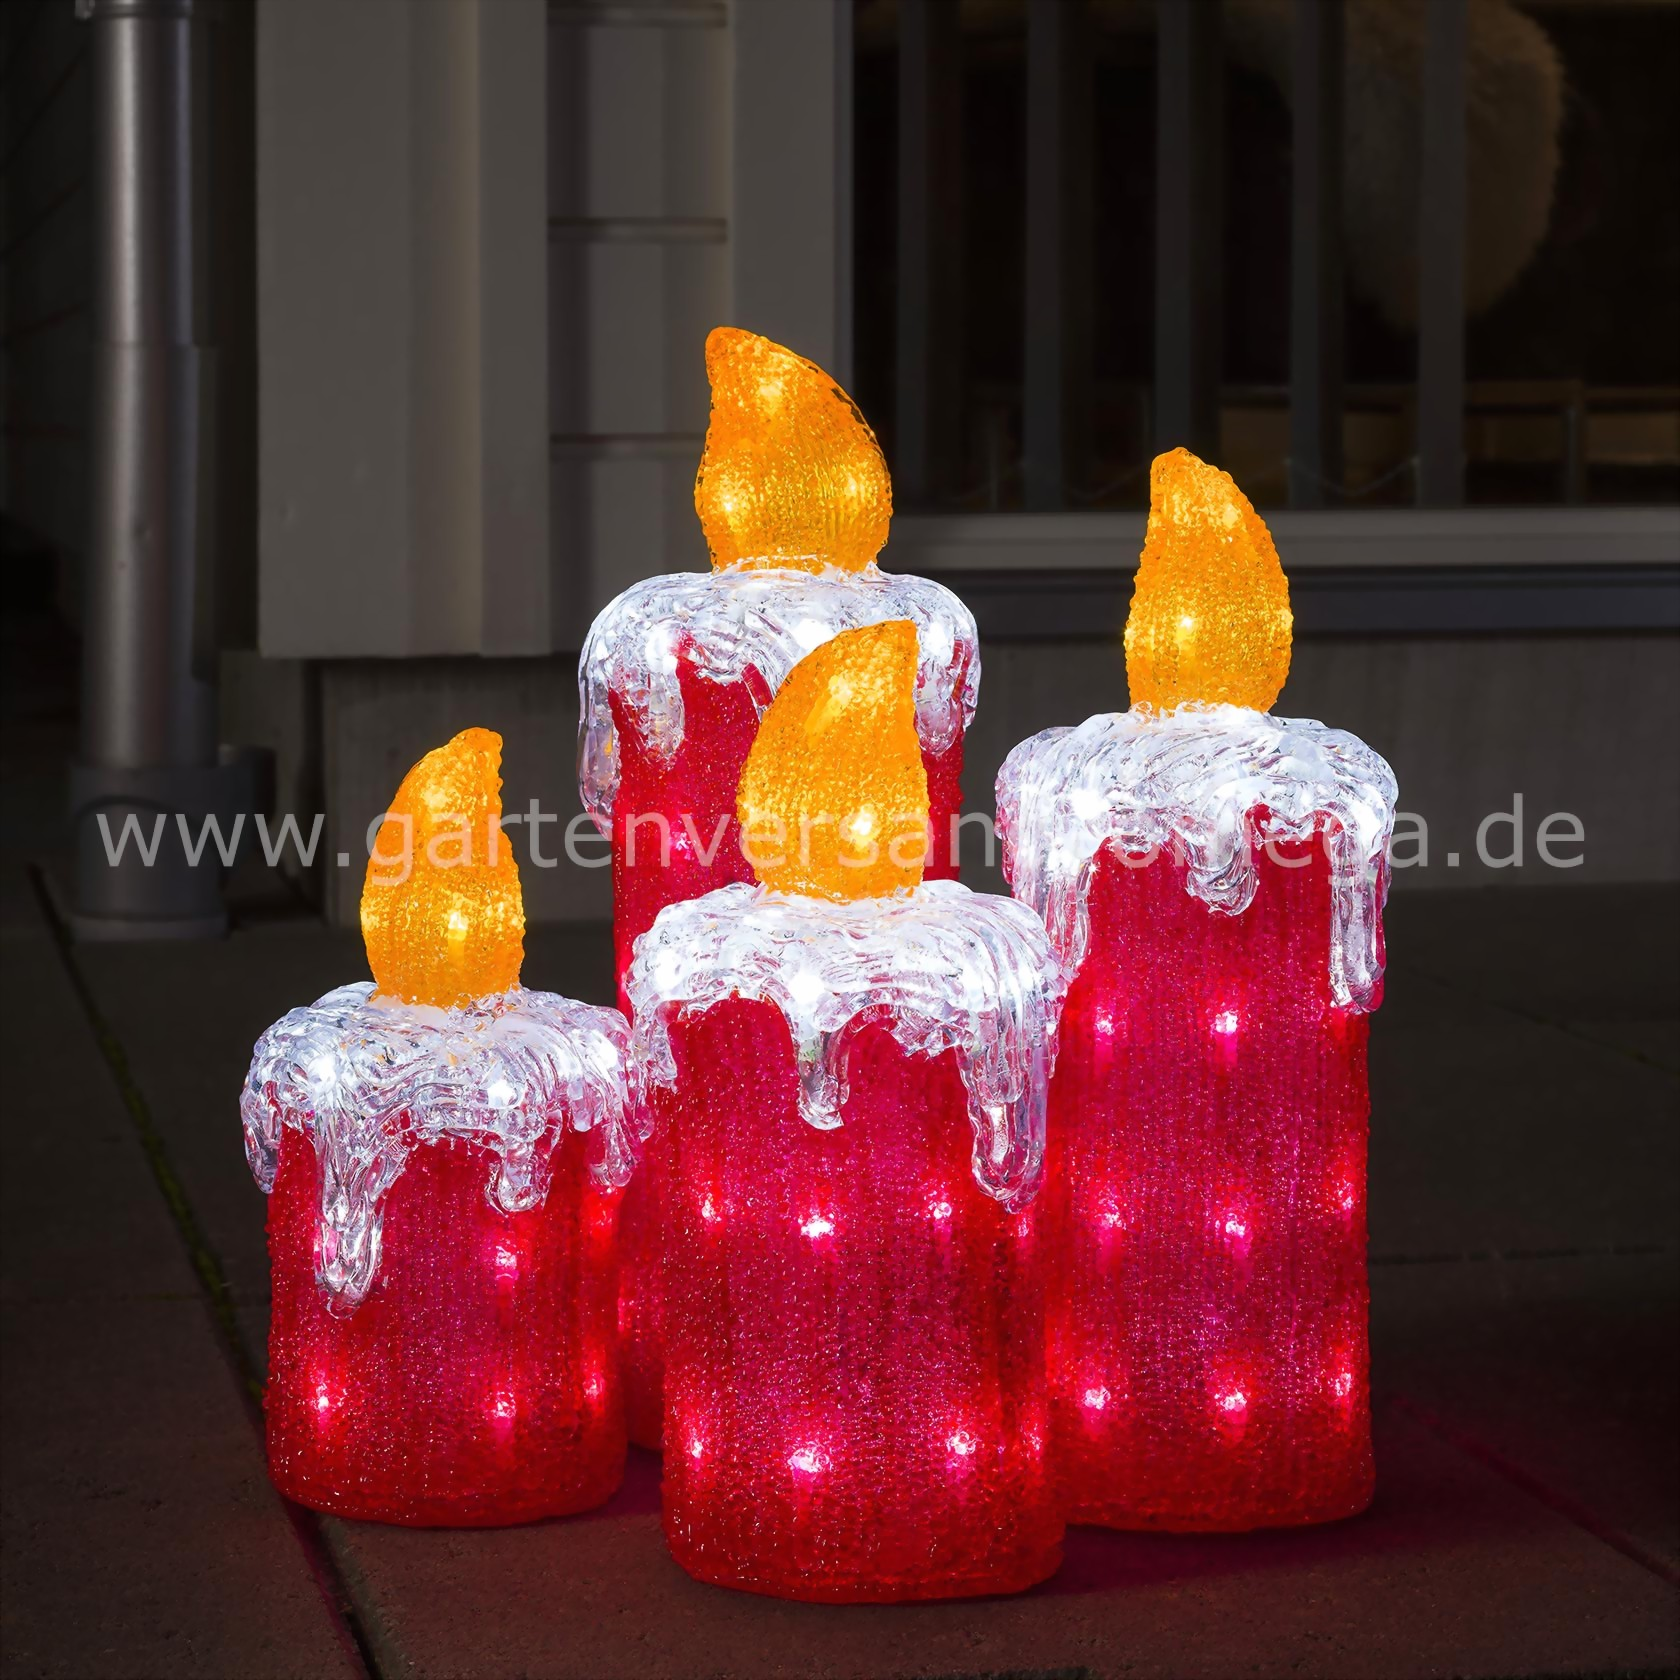 led acryl adventskerzen adventskerzen garten adventskranz im garten au enbeleuchtung advent. Black Bedroom Furniture Sets. Home Design Ideas